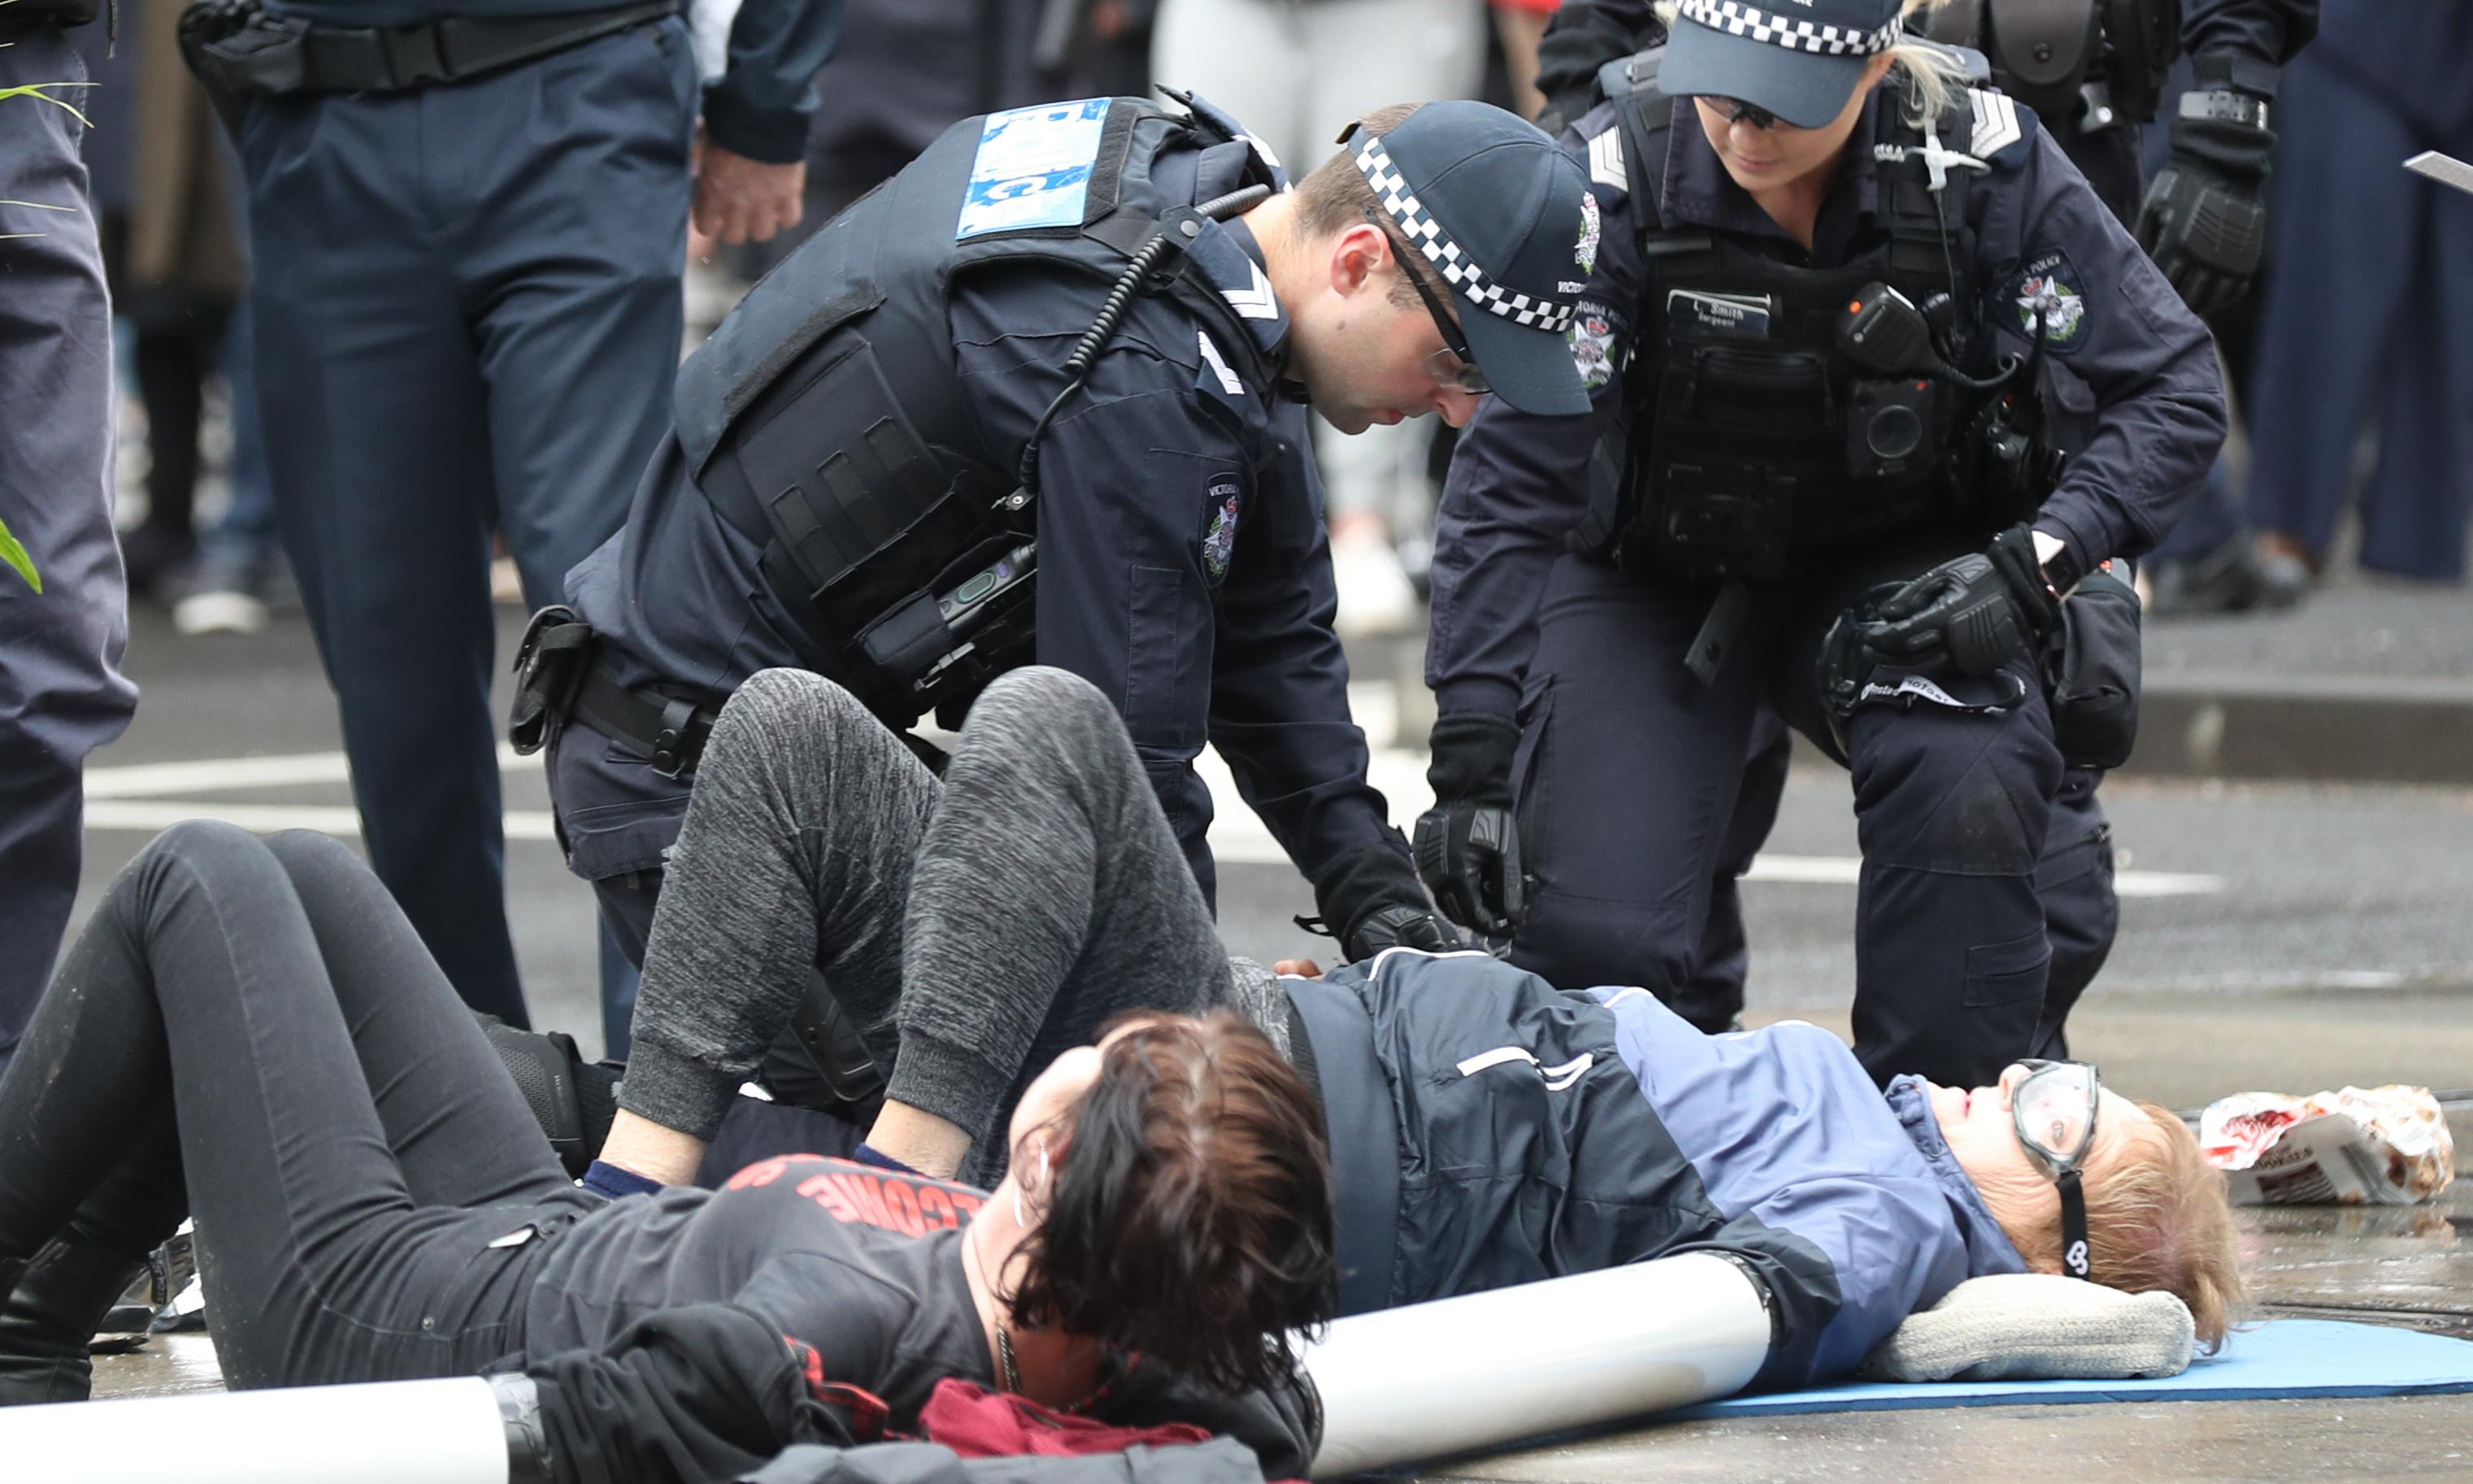 Extinction Rebellion protesters in Melbourne have bail conditions revoked